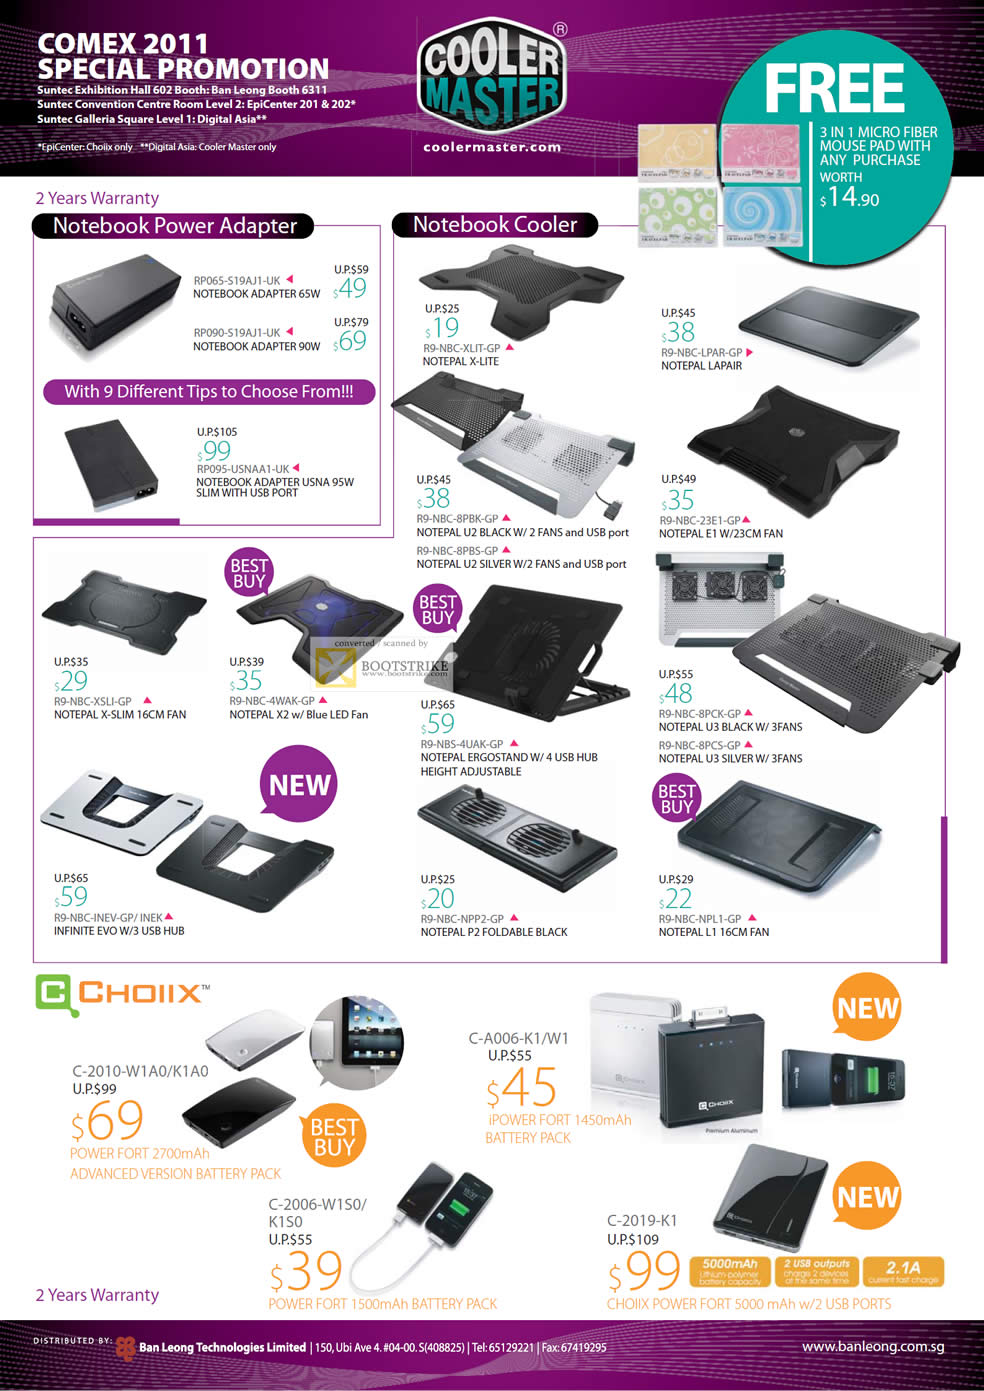 COMEX 2011 price list image brochure of Cooler Master Notebook Power Adapter Cooler Notepal Ergostand U3 E1 X-Lite U2 X2 X-Slim Choiix Power Fort Battery Pack IPower